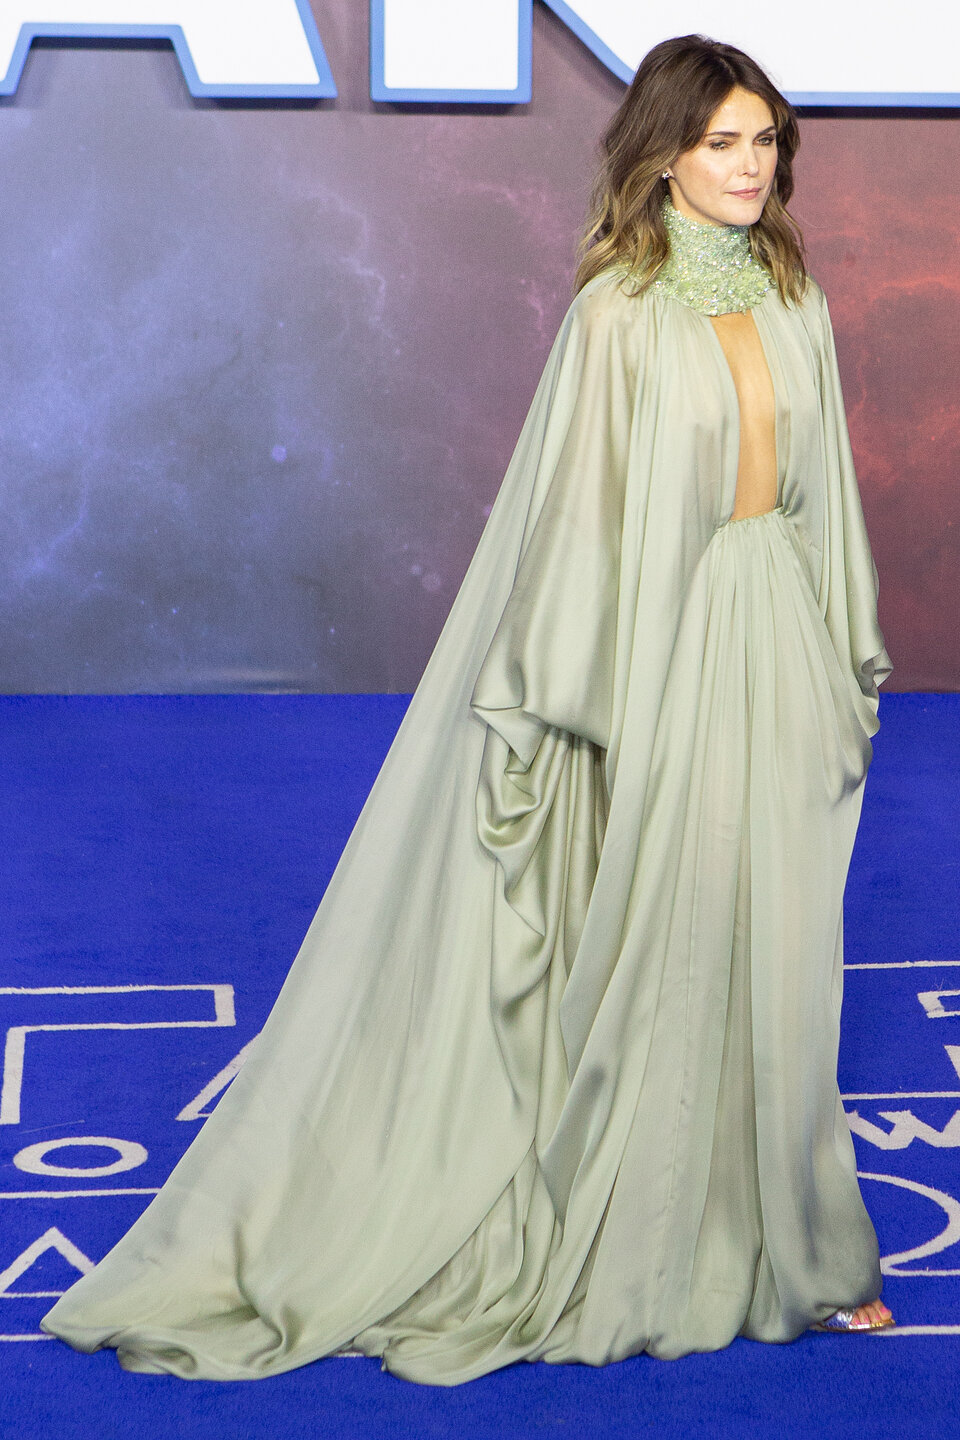 Star Wars - The Rise of Skywalker European Premiere